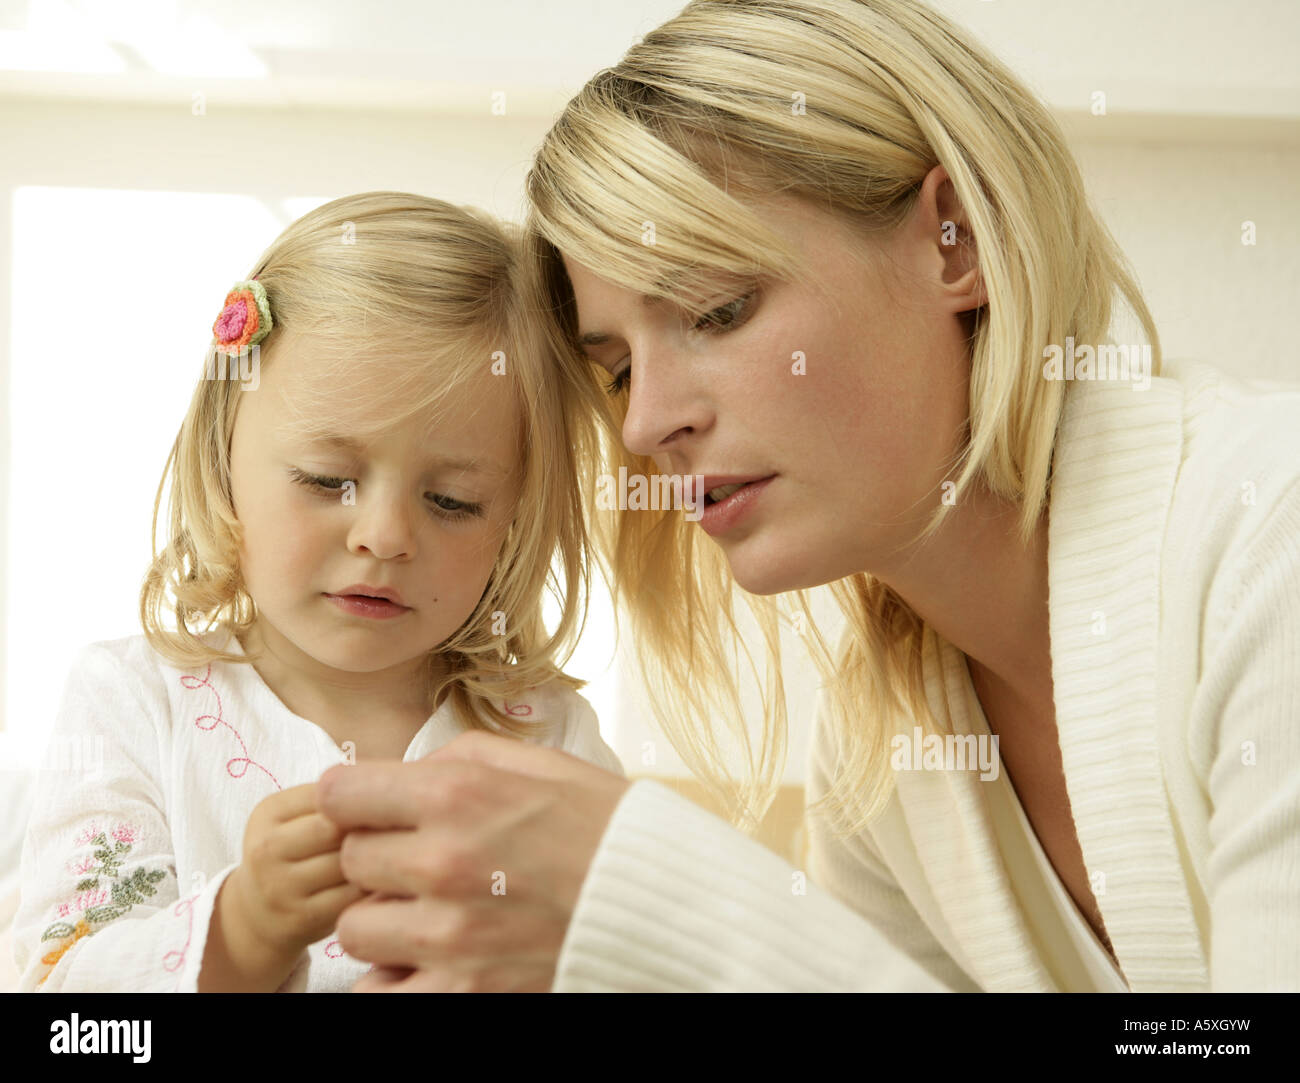 Mother with daughter close up - Stock Image